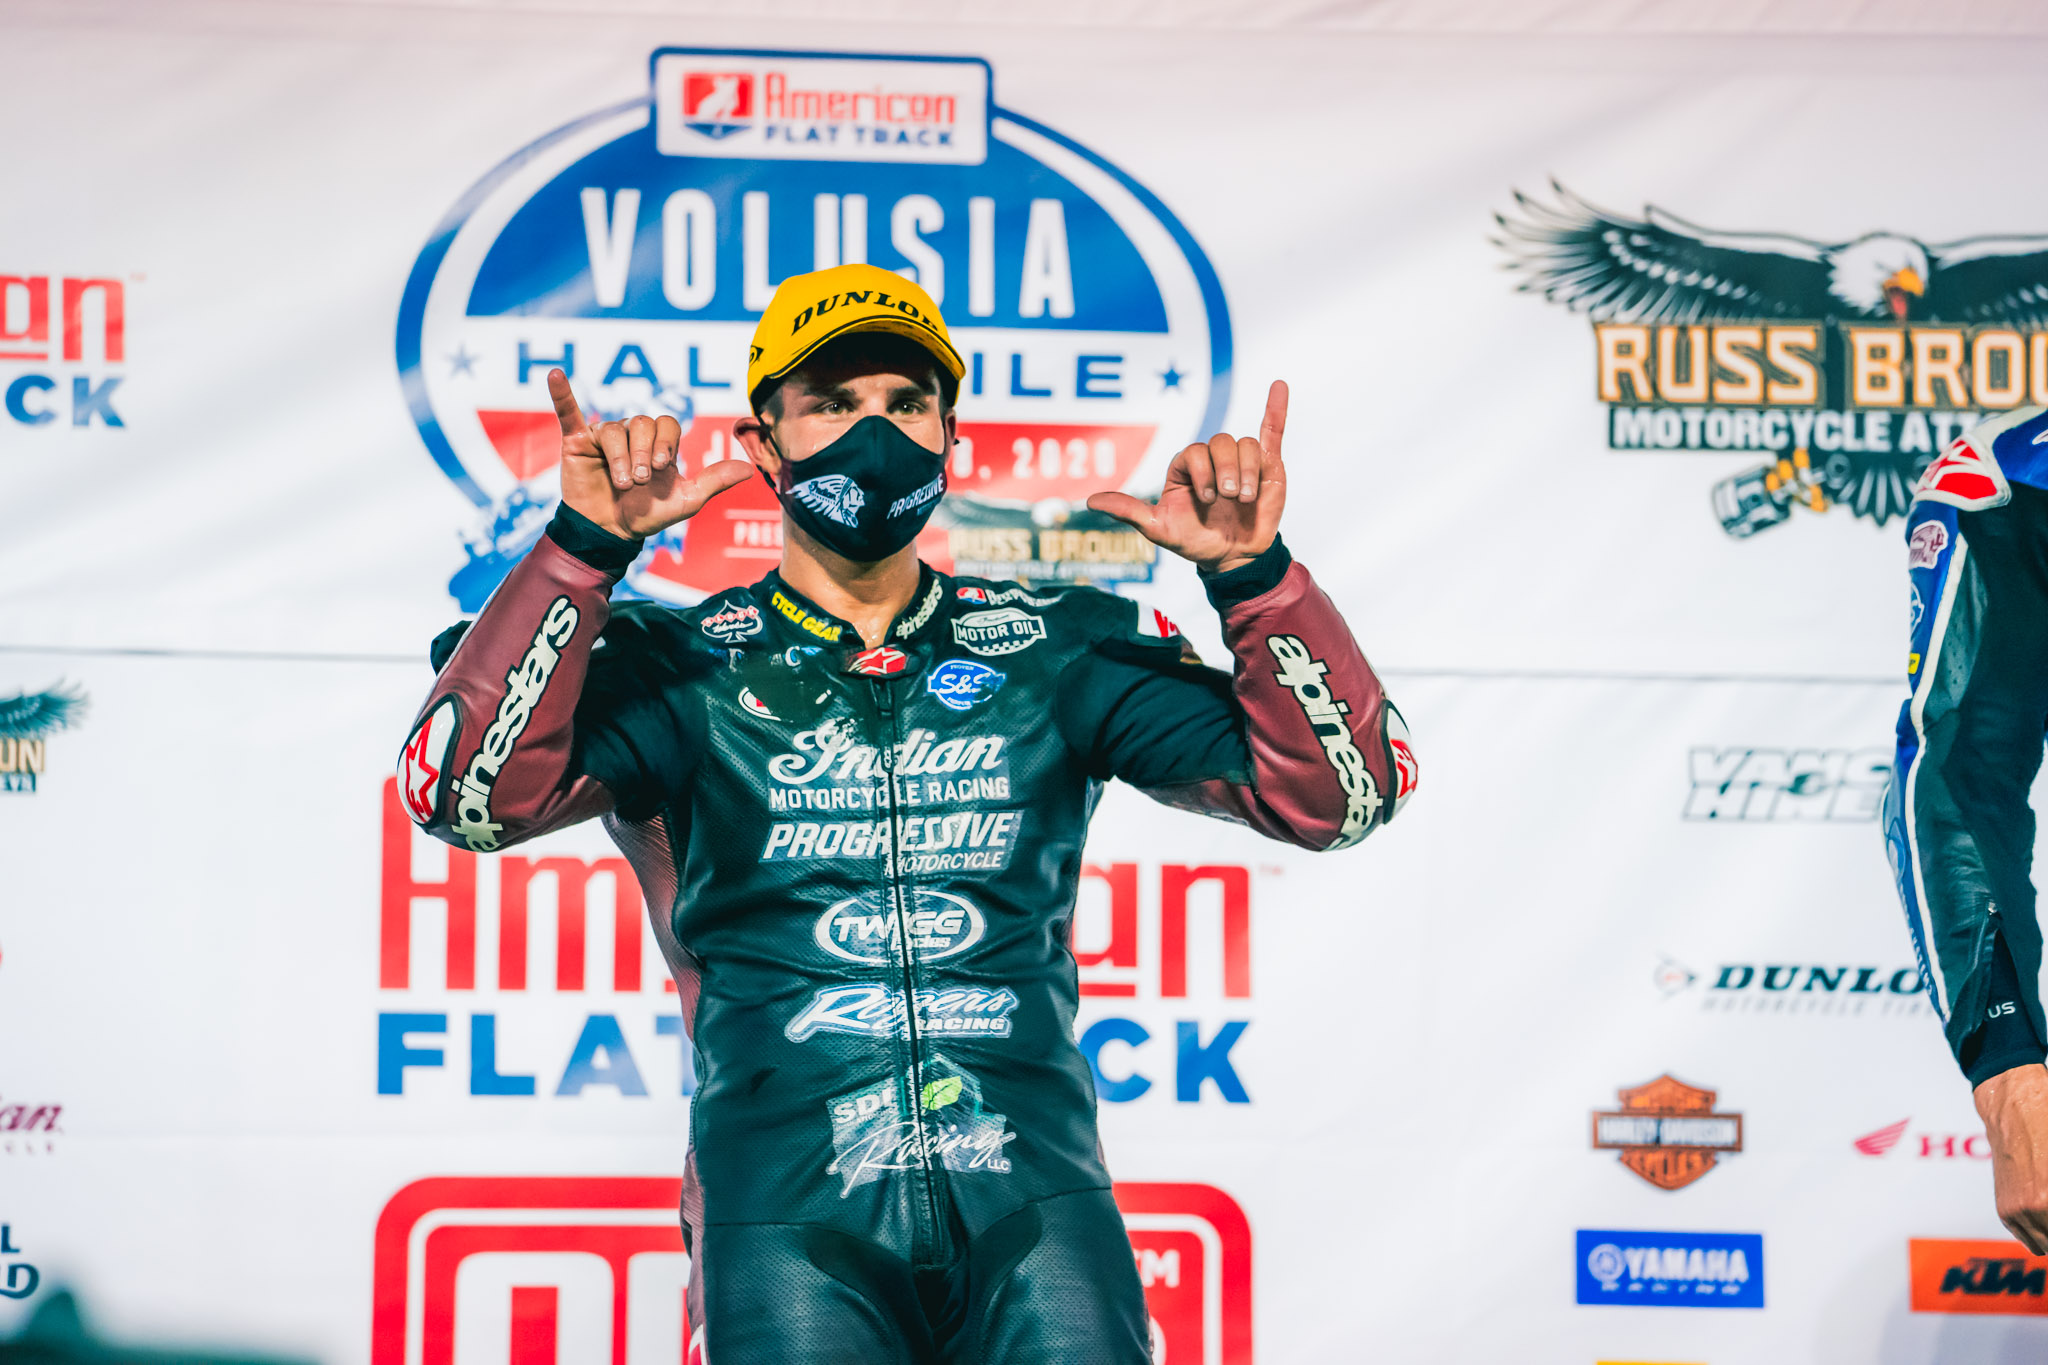 Indian Motorcycle Racing - Volusia Hlf-Mile V1 Mees Podium[2]